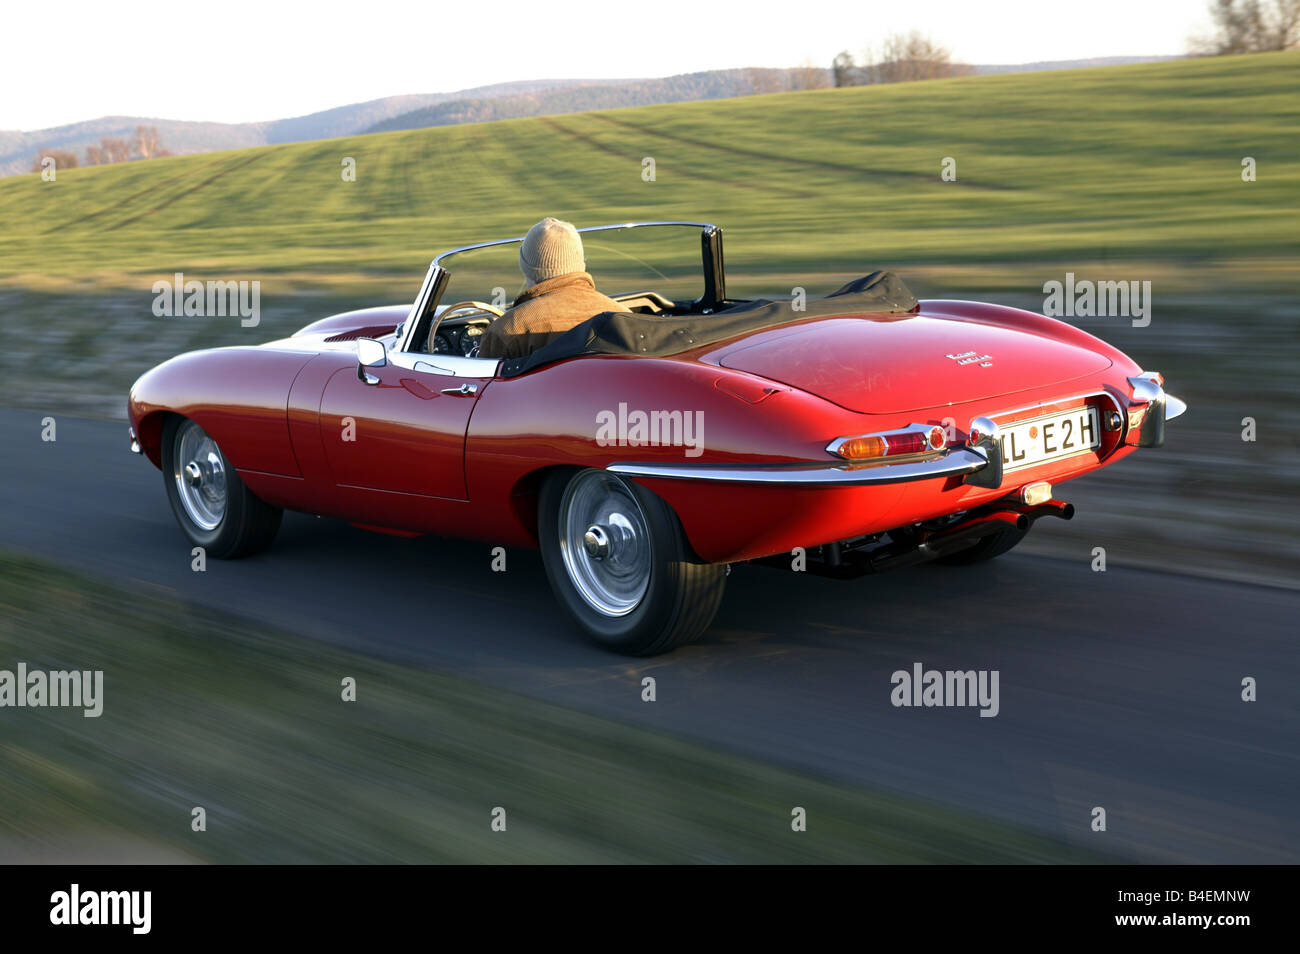 Car Jaguar E Type S1 42 Model Year 1965 Convertible Vintage 1960s Sixties Red 265 PS Top Open Drivin